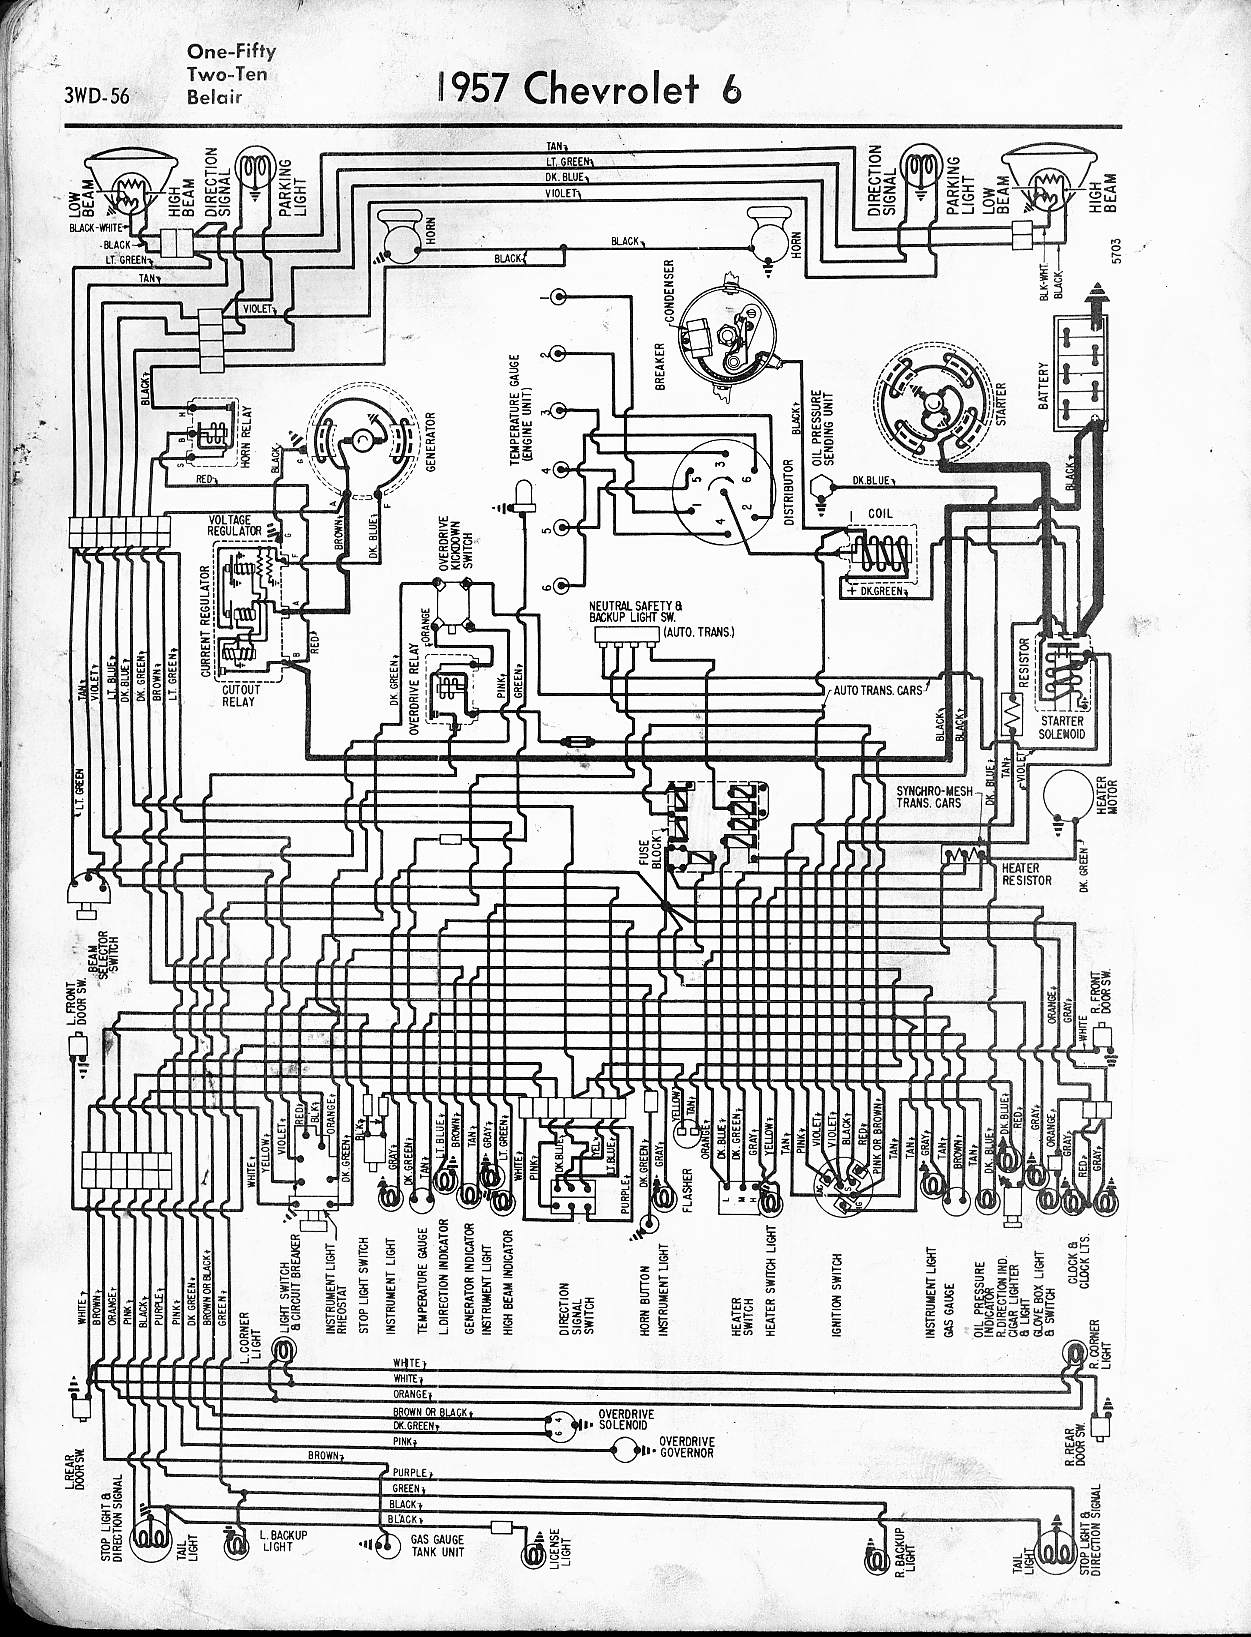 MWireChev57_3WD 056 57 65 chevy wiring diagrams 1957 oldsmobile wiring diagram at beritabola.co